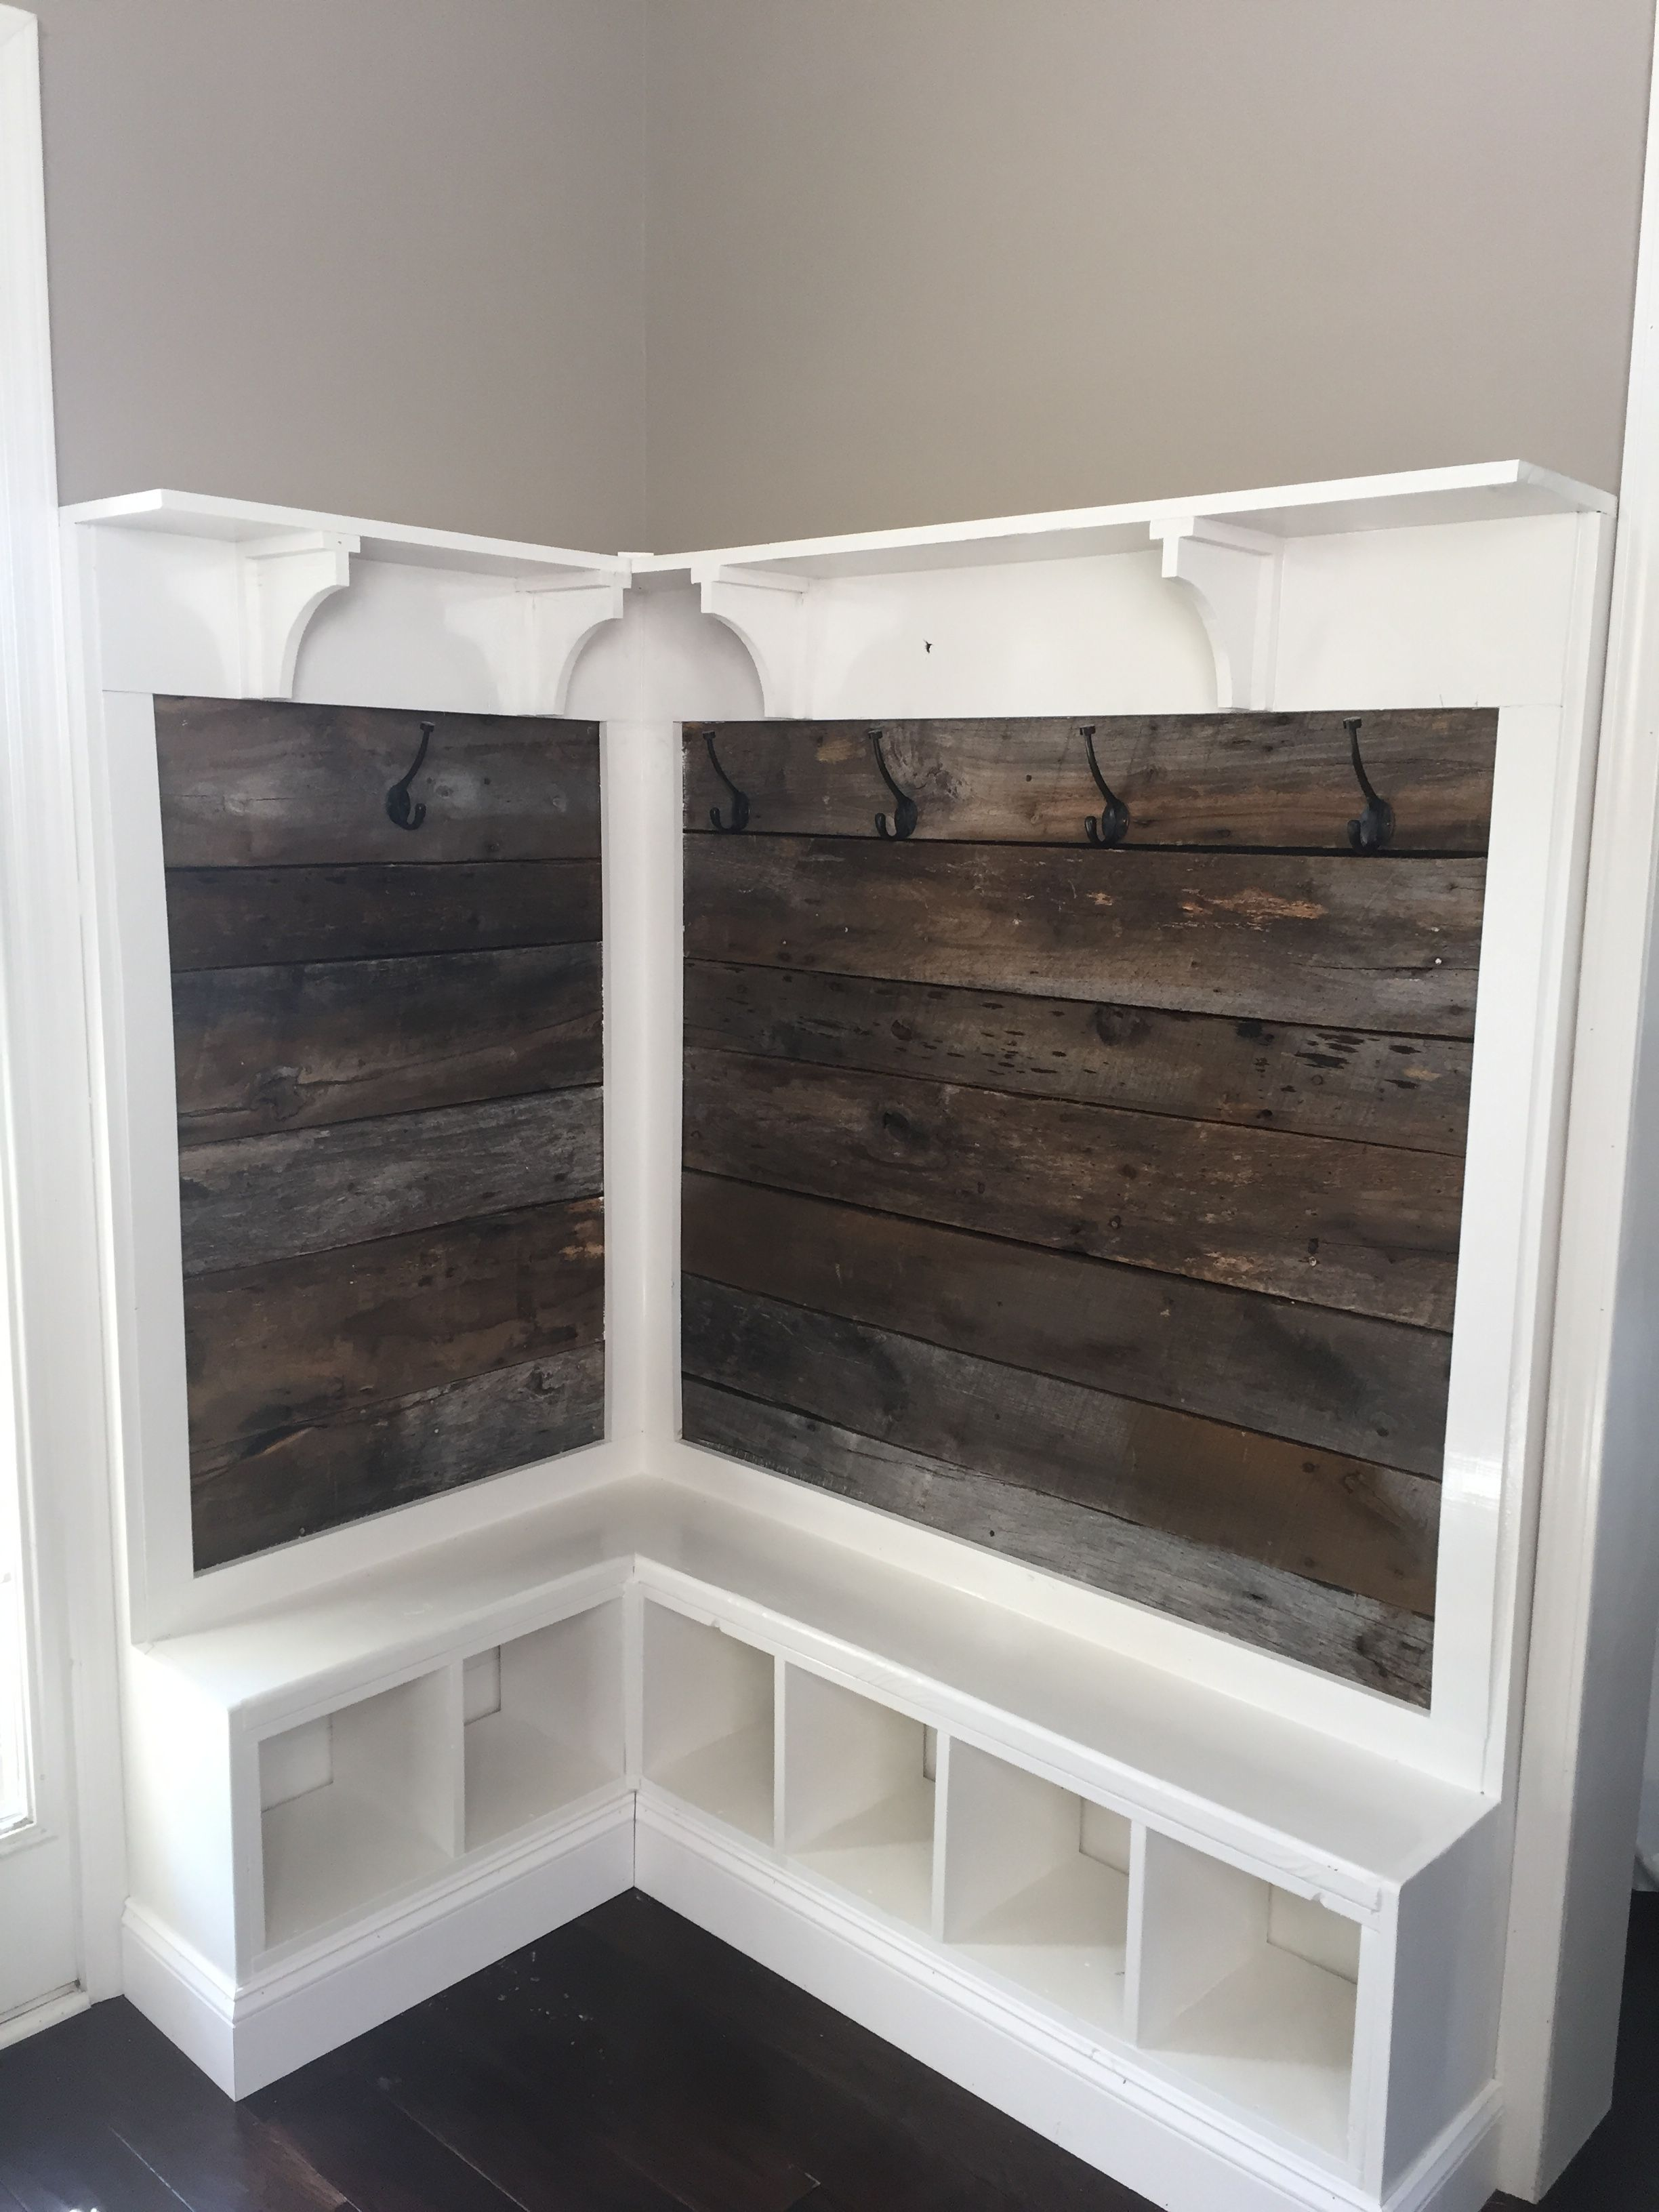 Rustic wood panel storage space for a mud room.